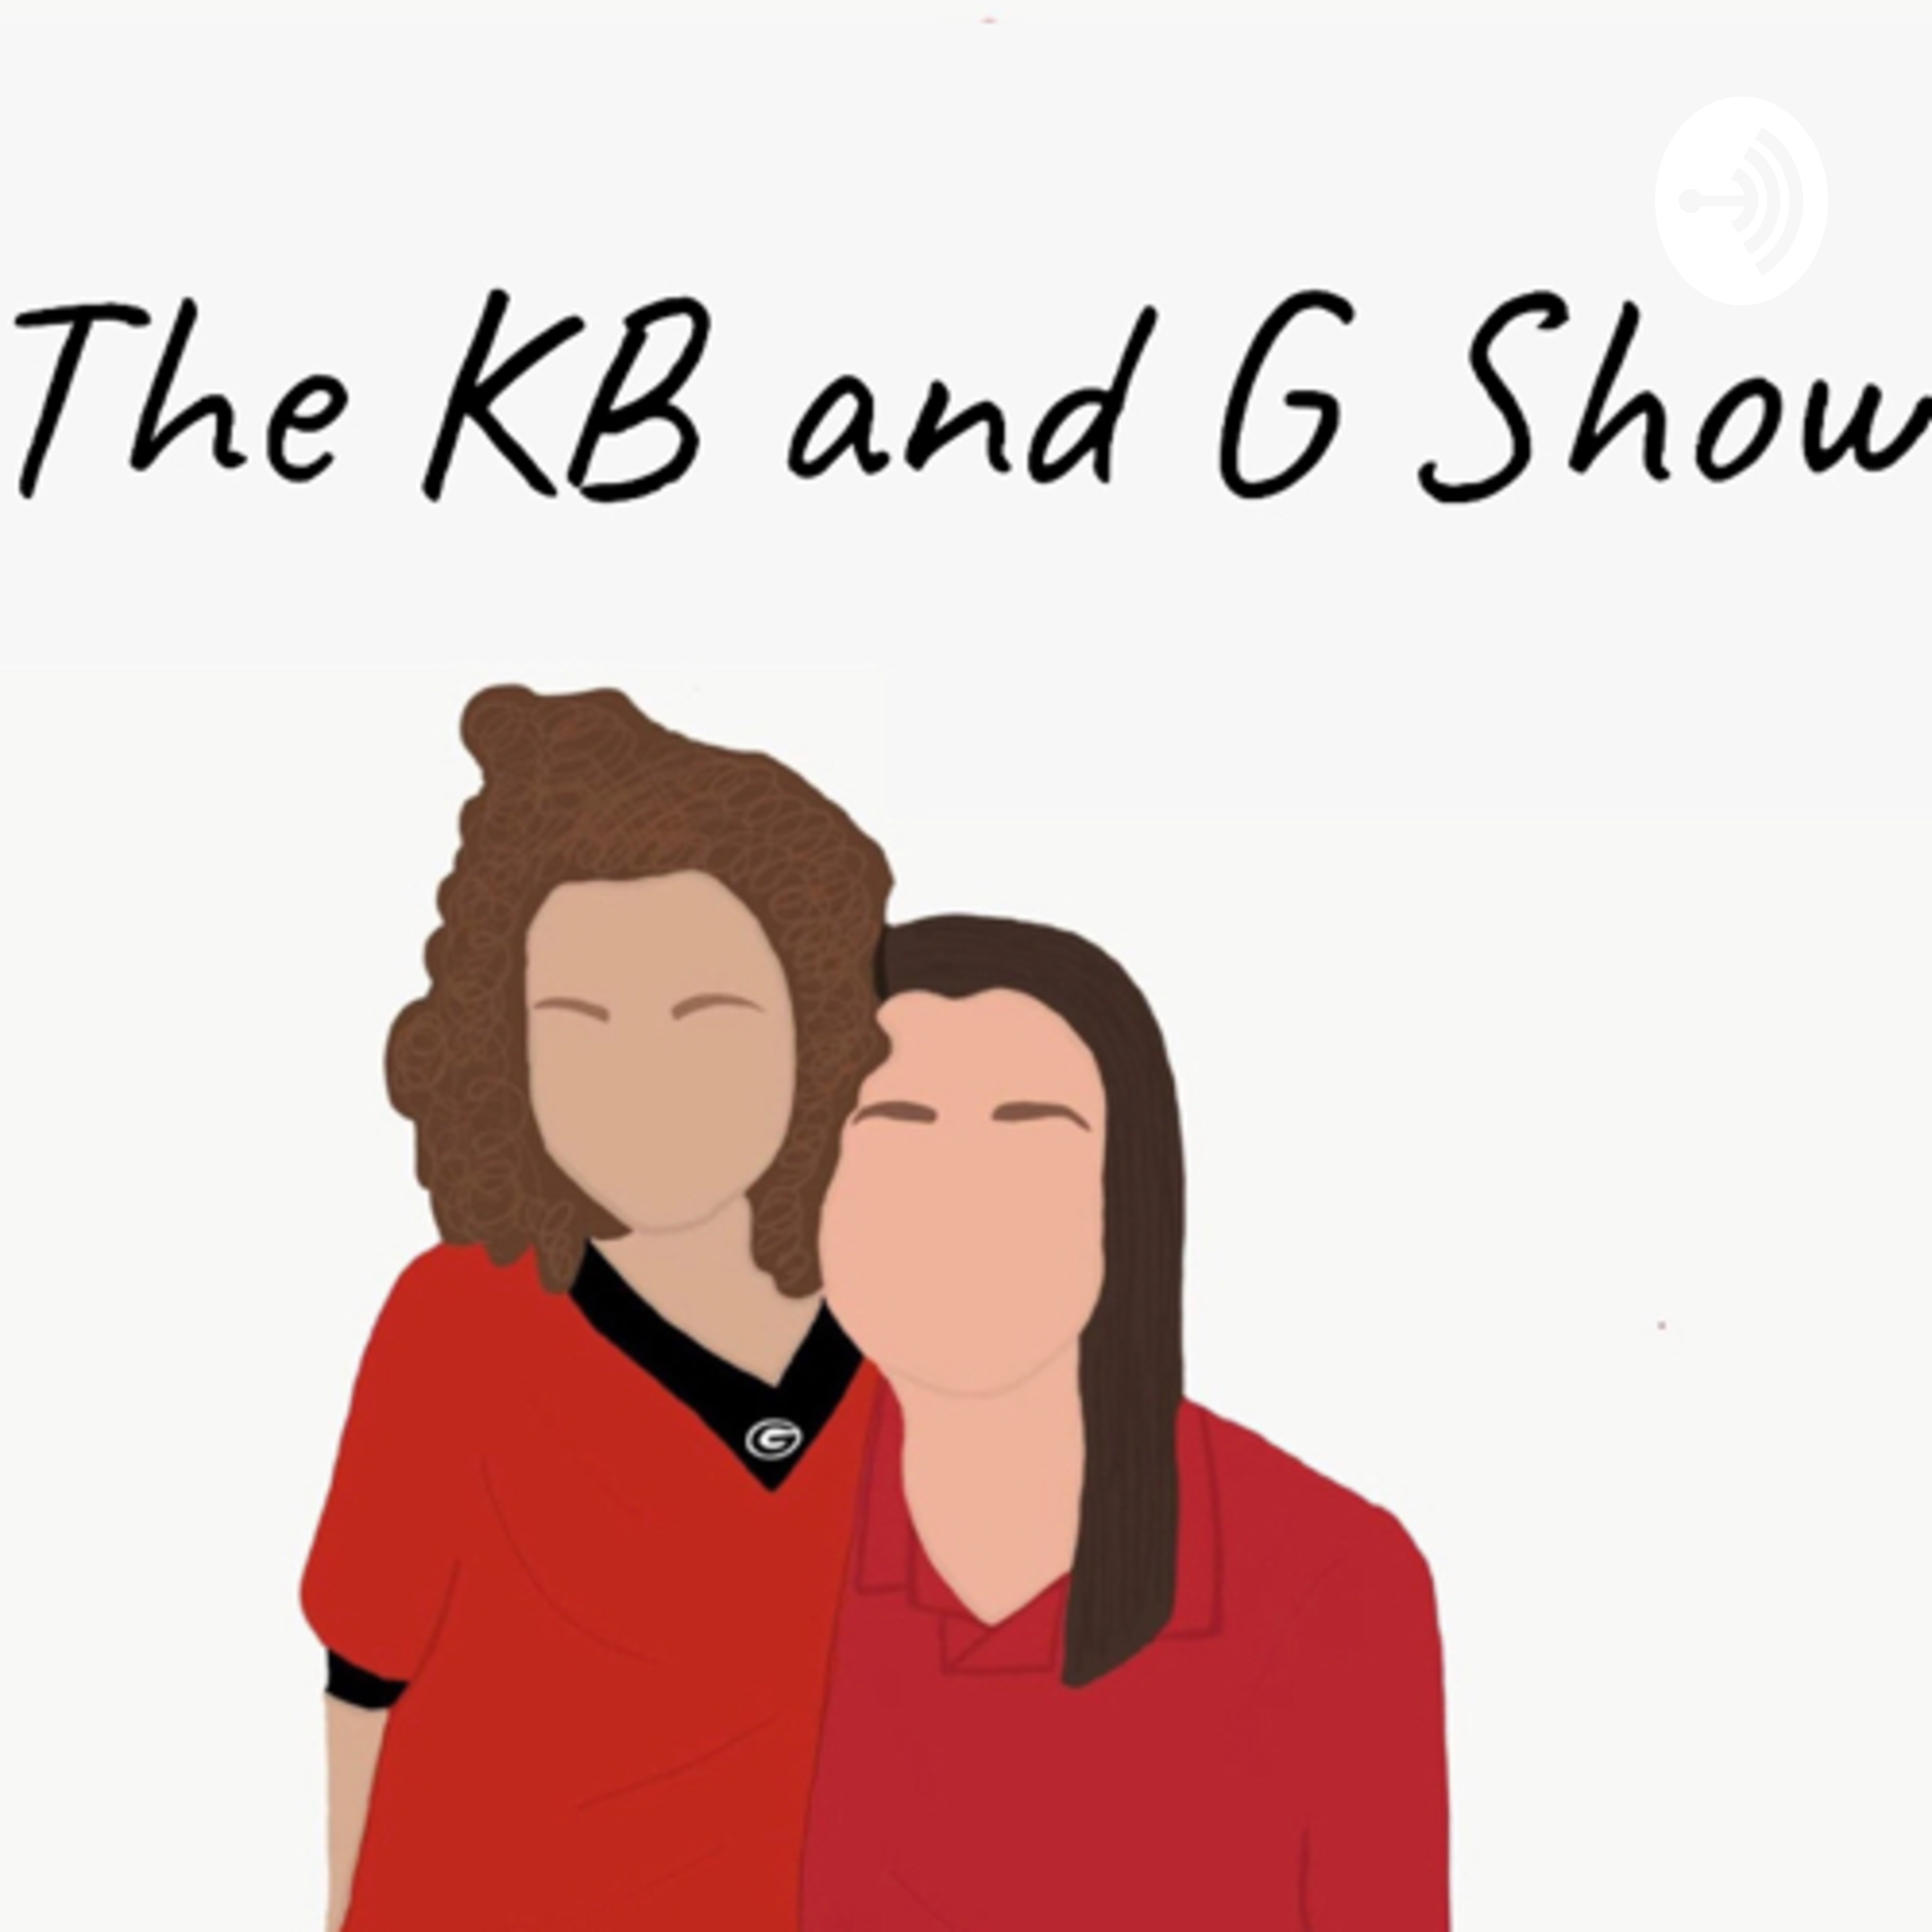 The KB and G Show